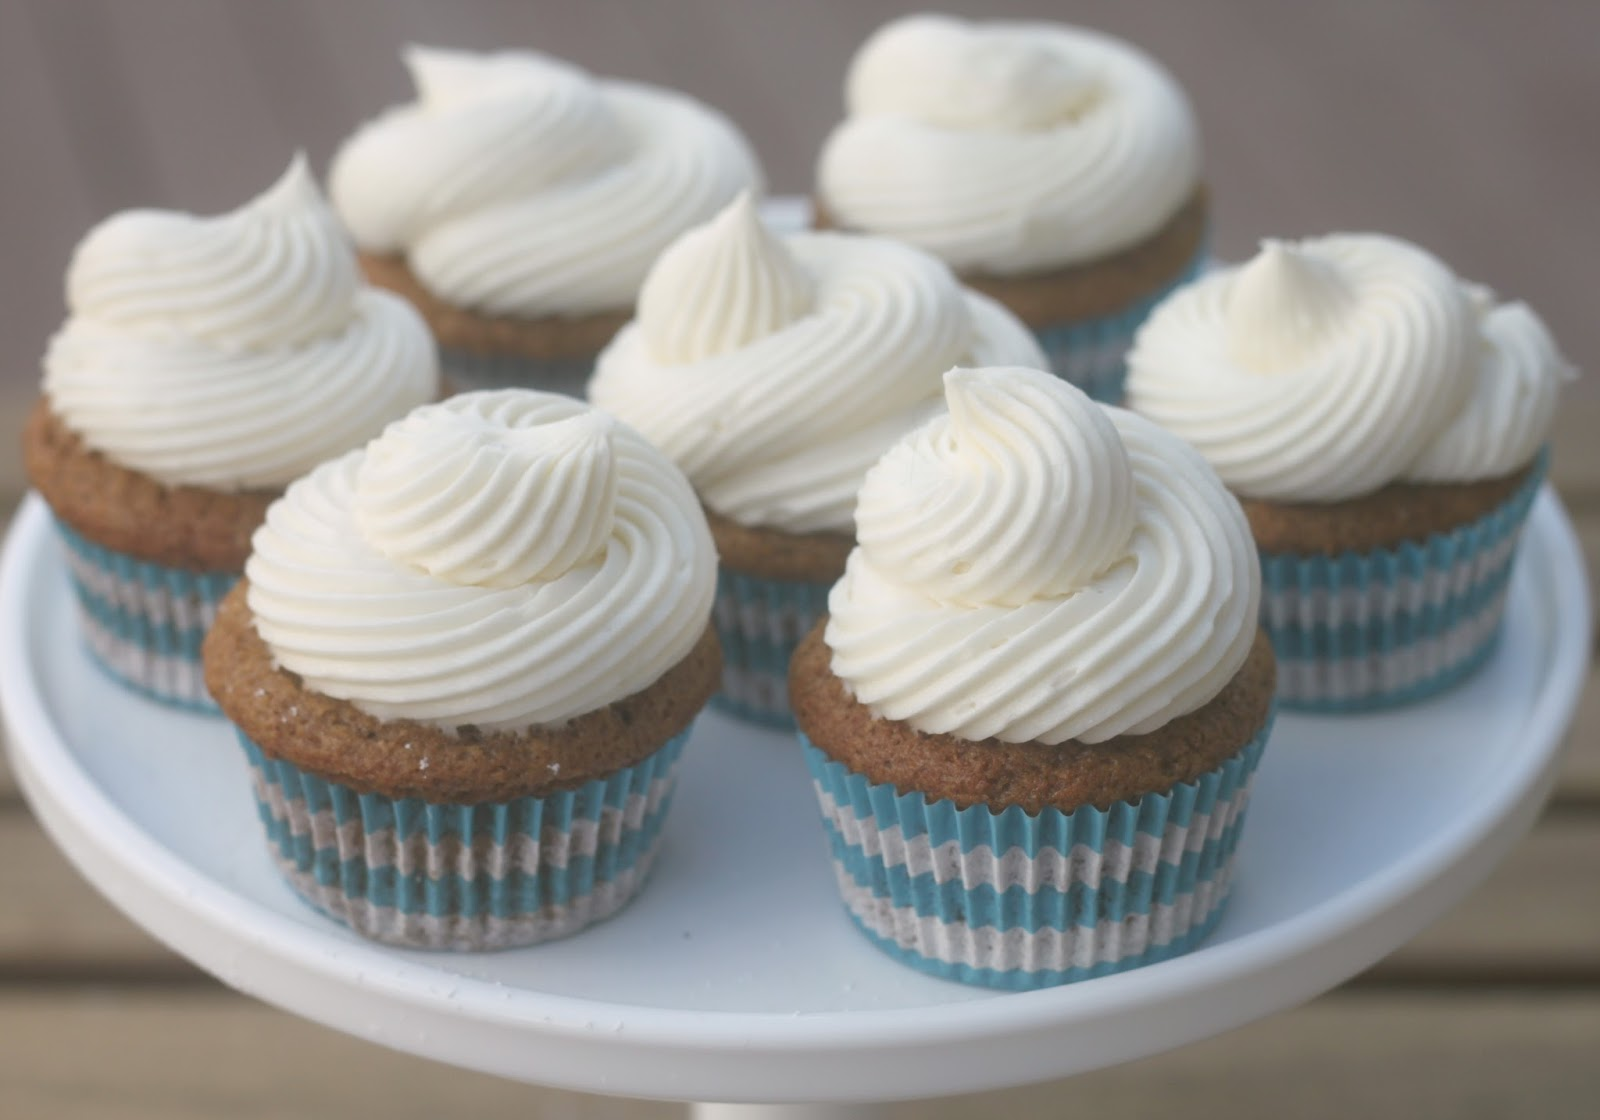 ... and more: Pumpkin Cupcakes with Cream Cheese Buttercream Frosting